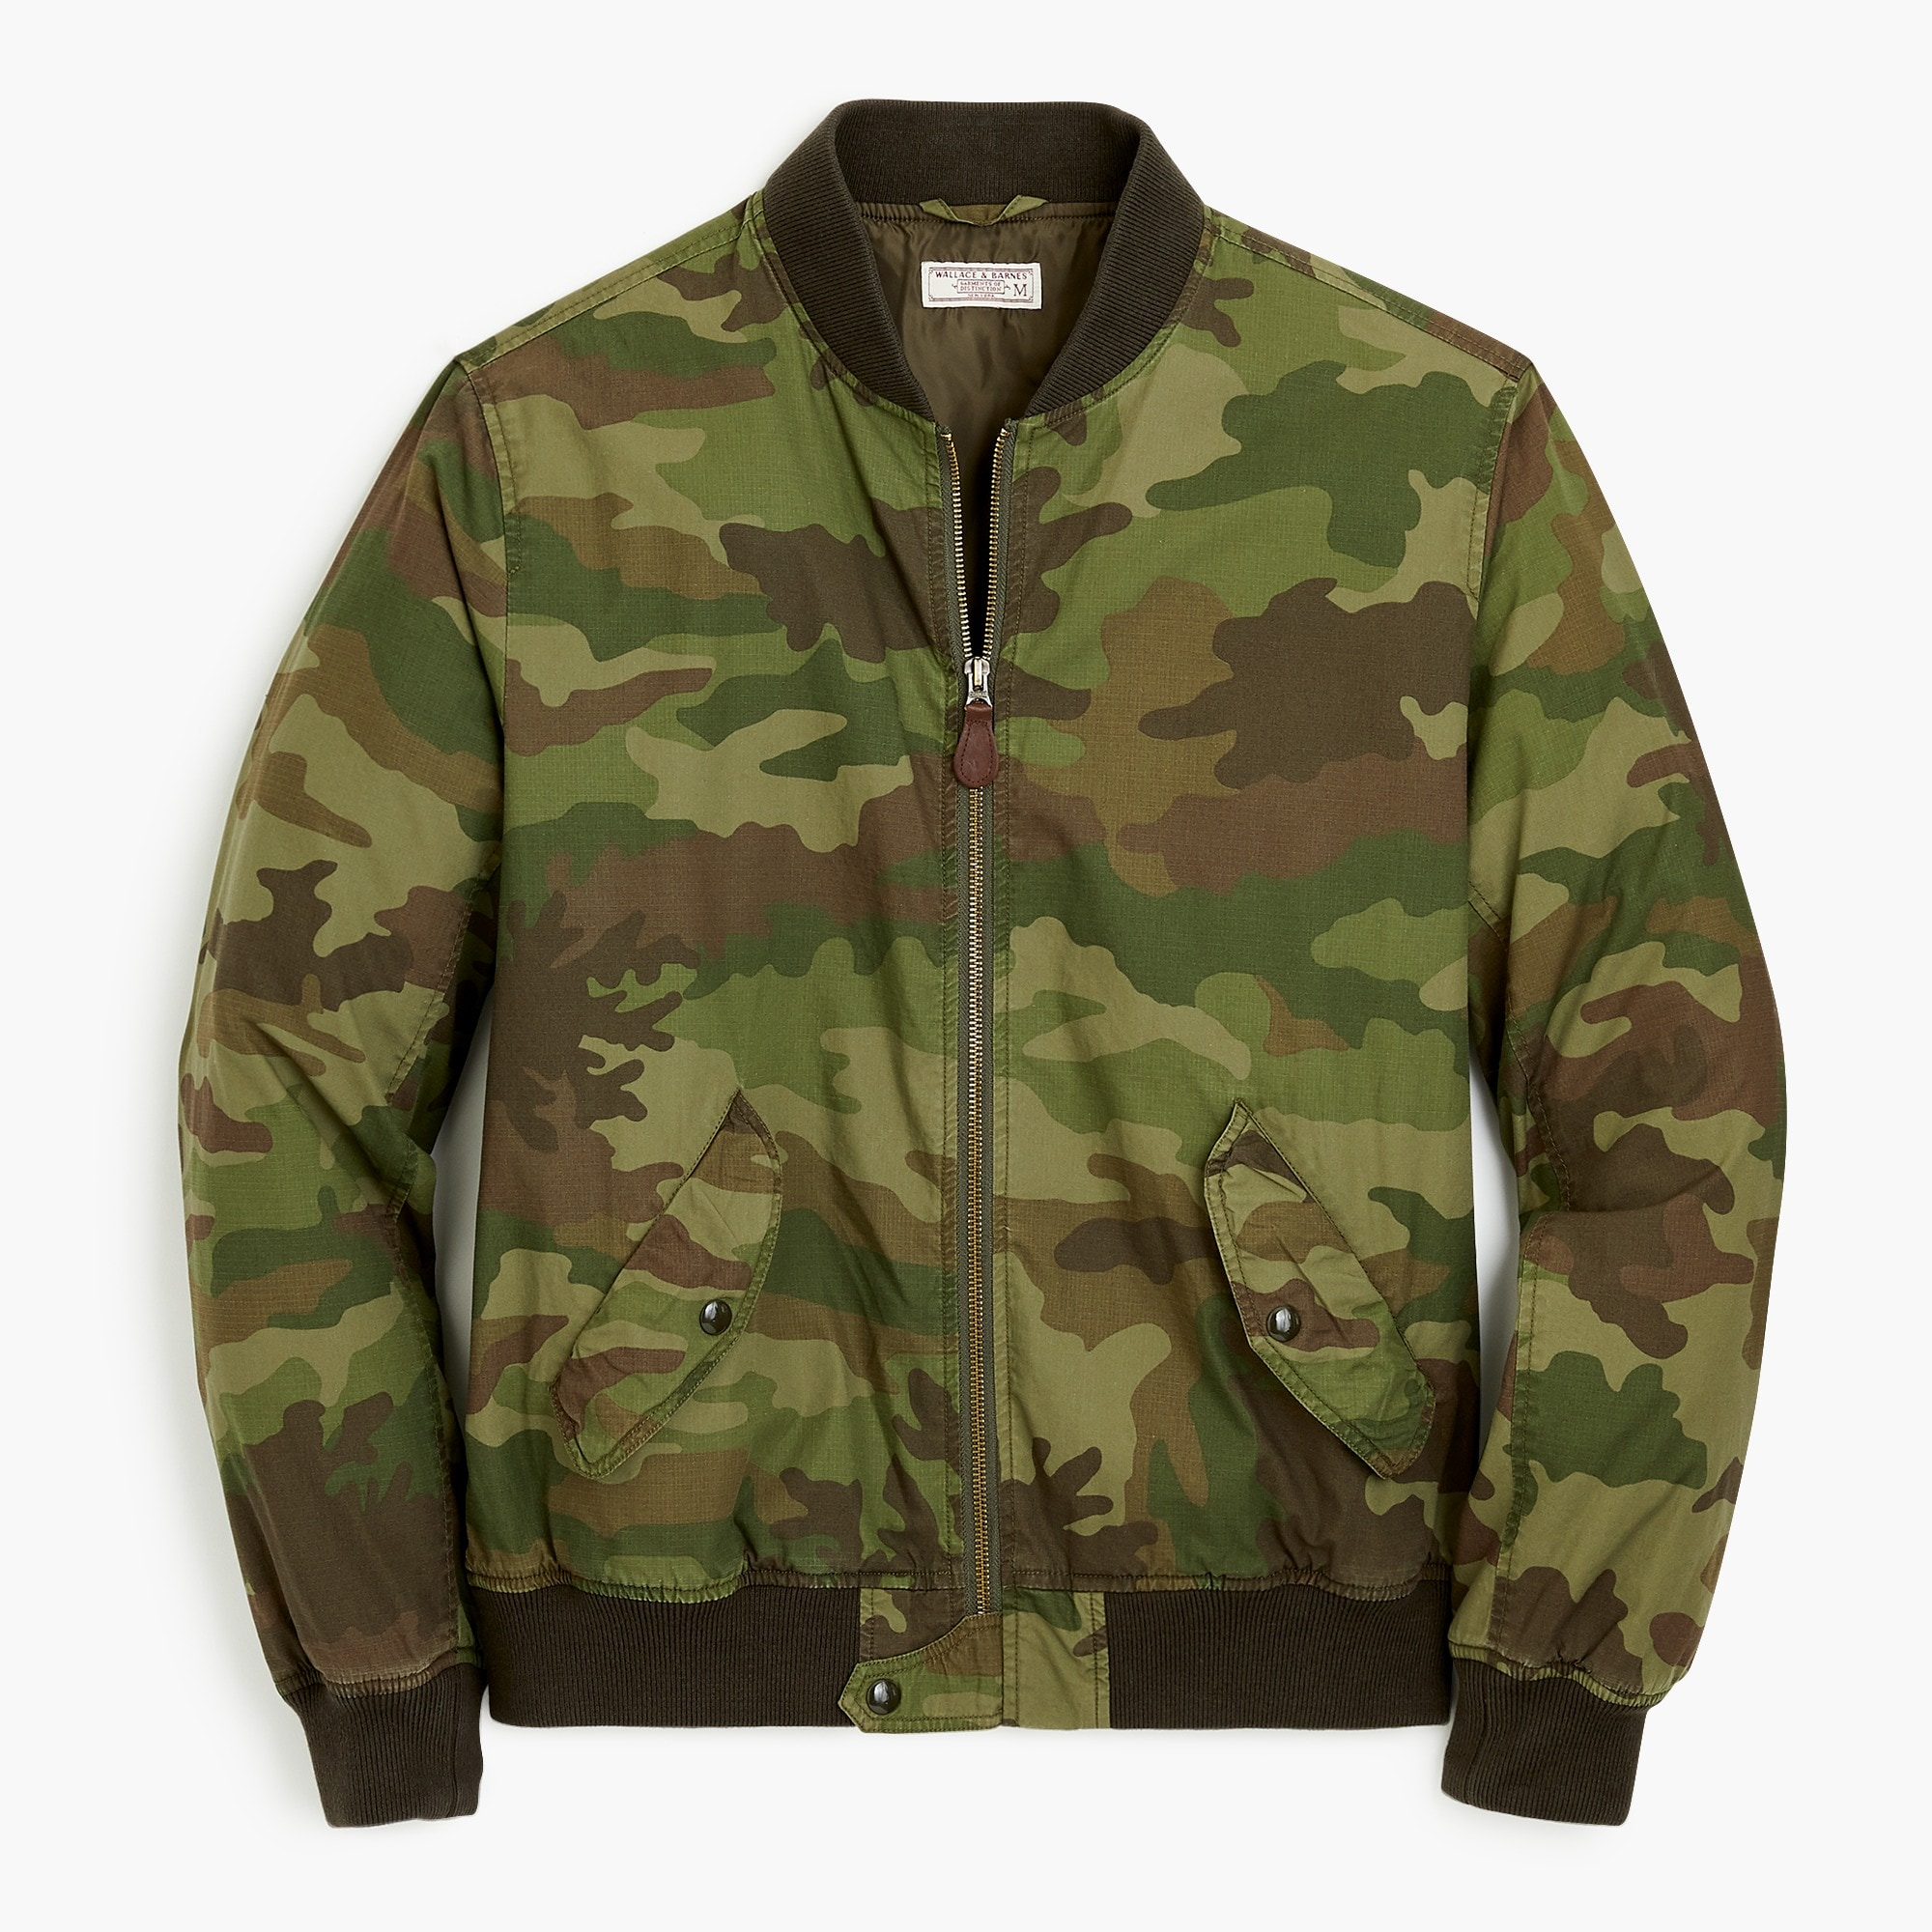 Image 4 for Wallace & Barnes MA-1 bomber jacket in camo